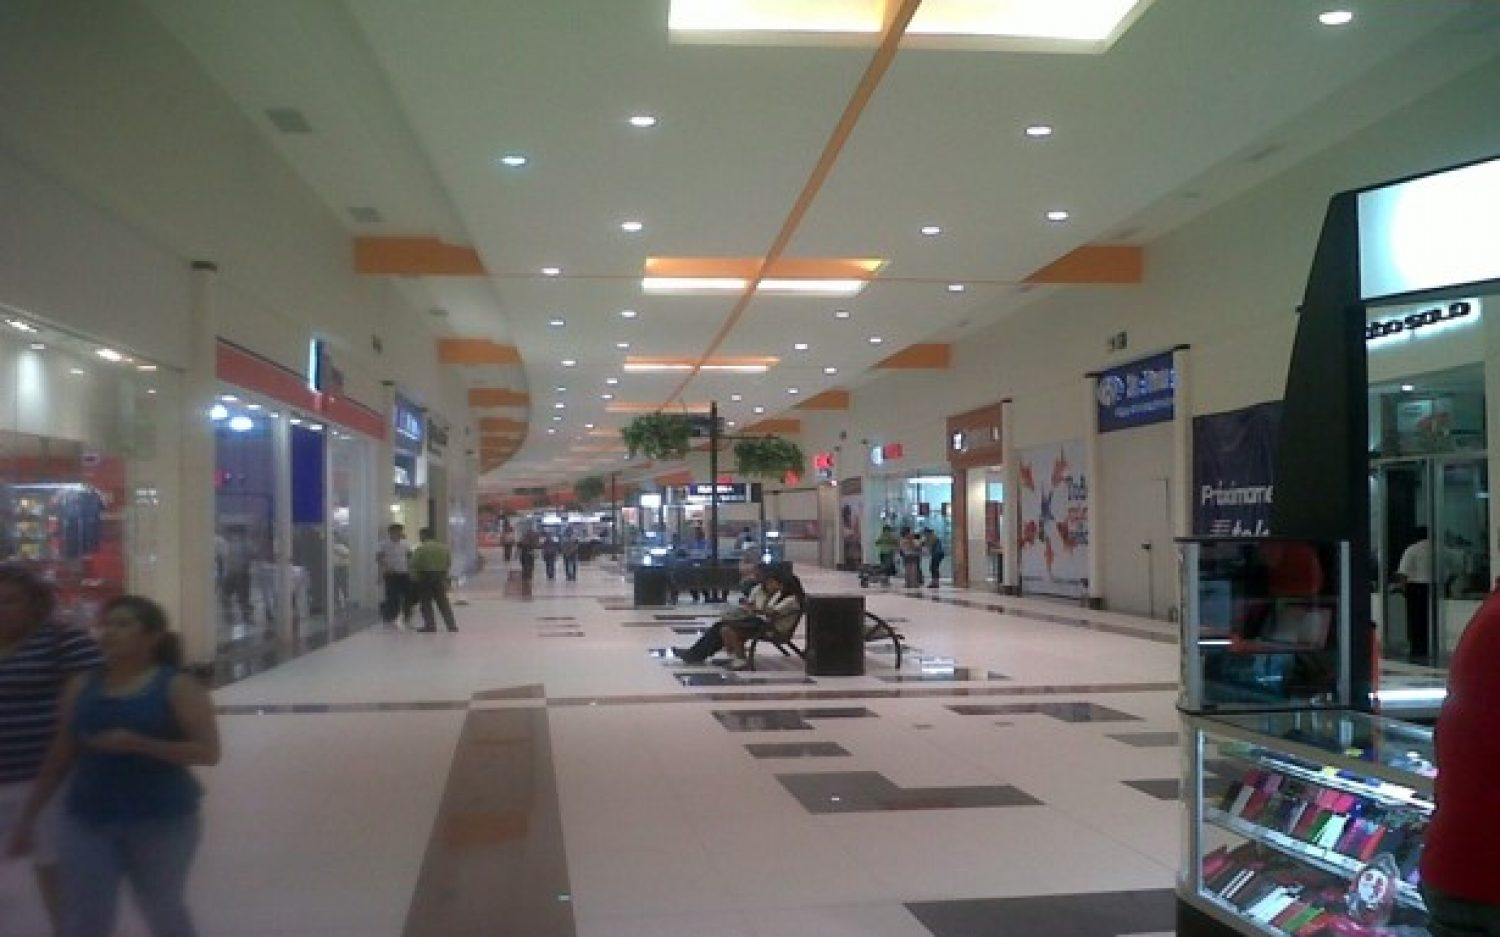 Co-Plaza Sendero Villahermosa (53)